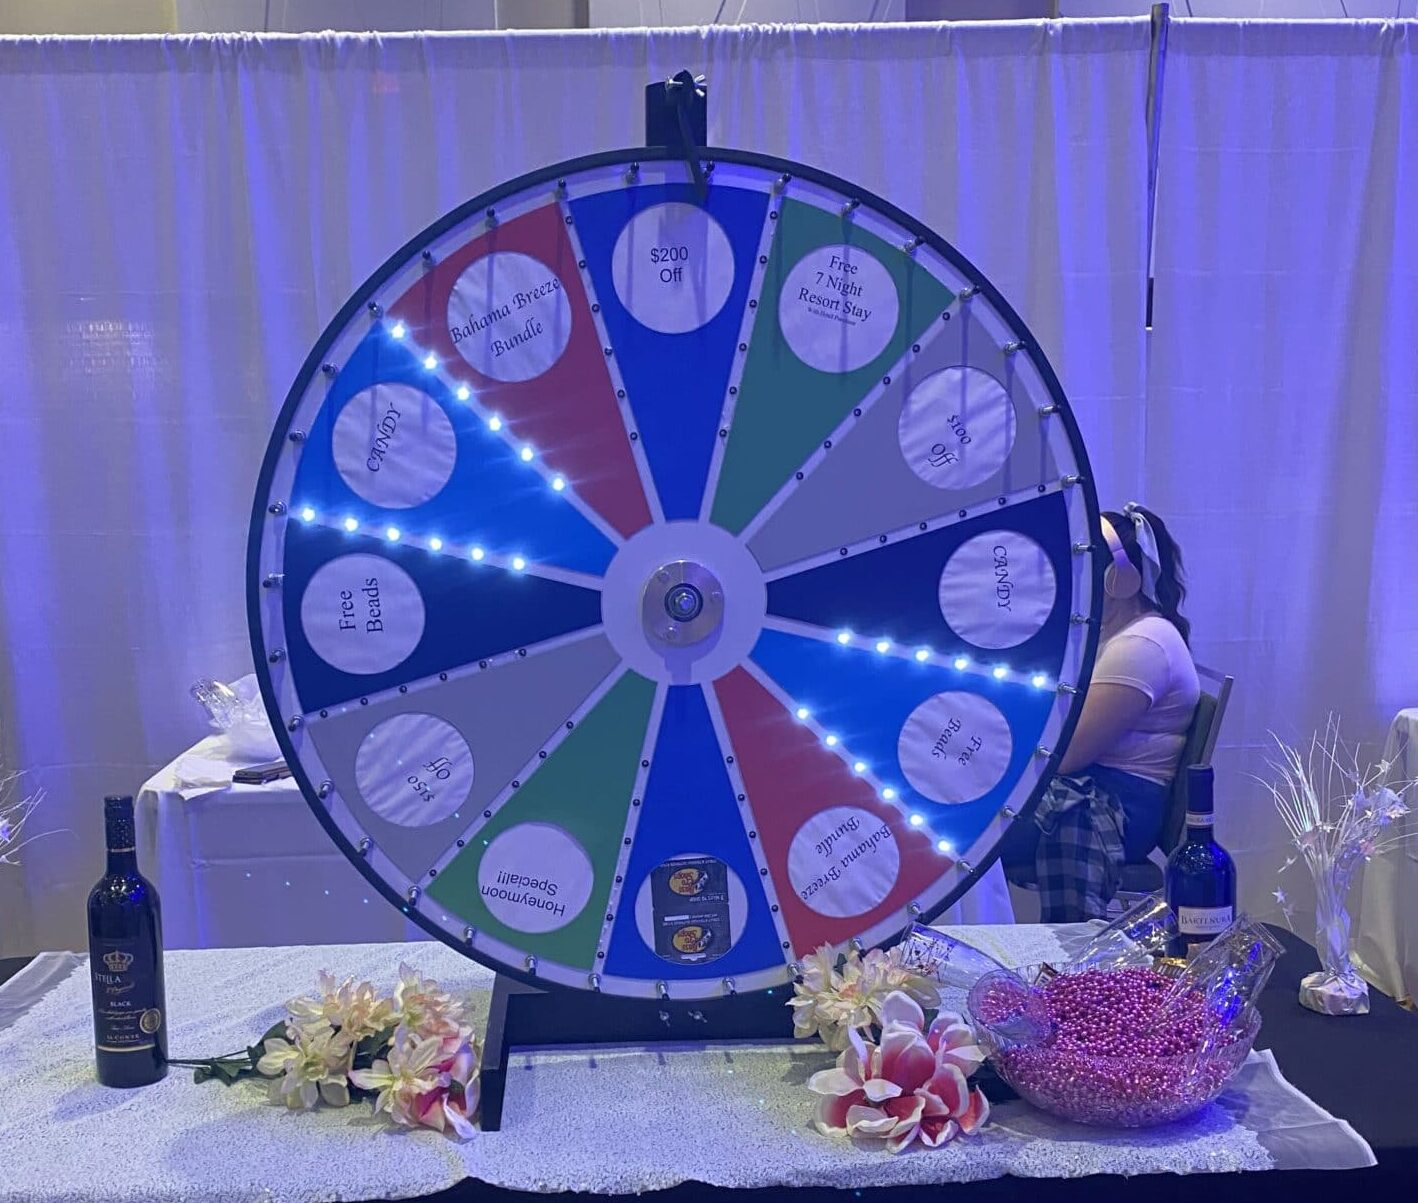 prize wheel with lights and different colored wedges with prizes on it sitting on top of a table